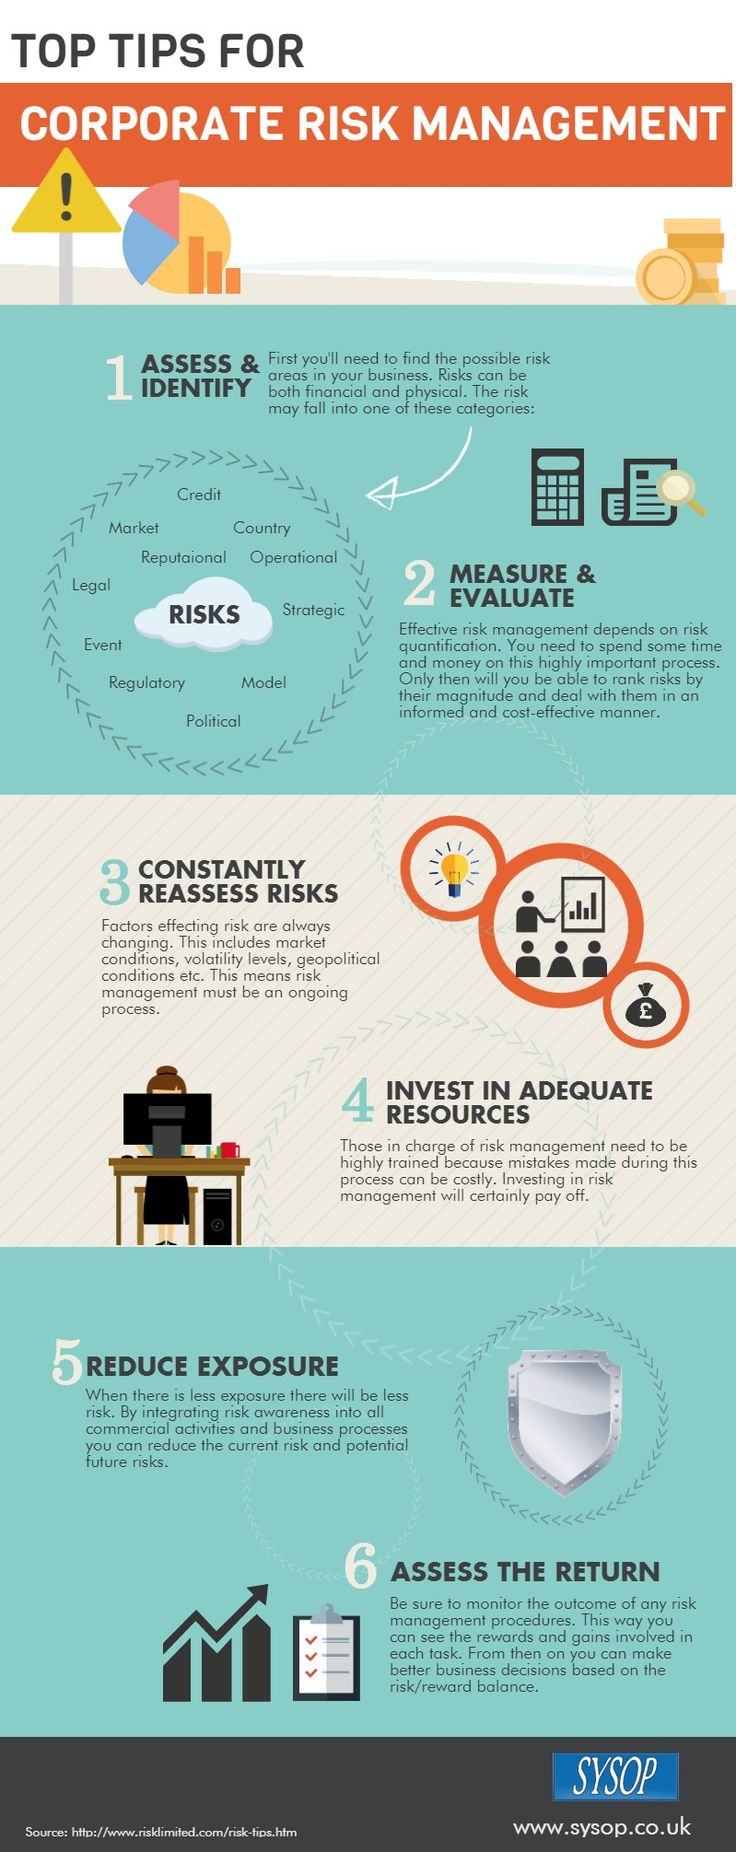 Top Tips for Corporate Risk Management